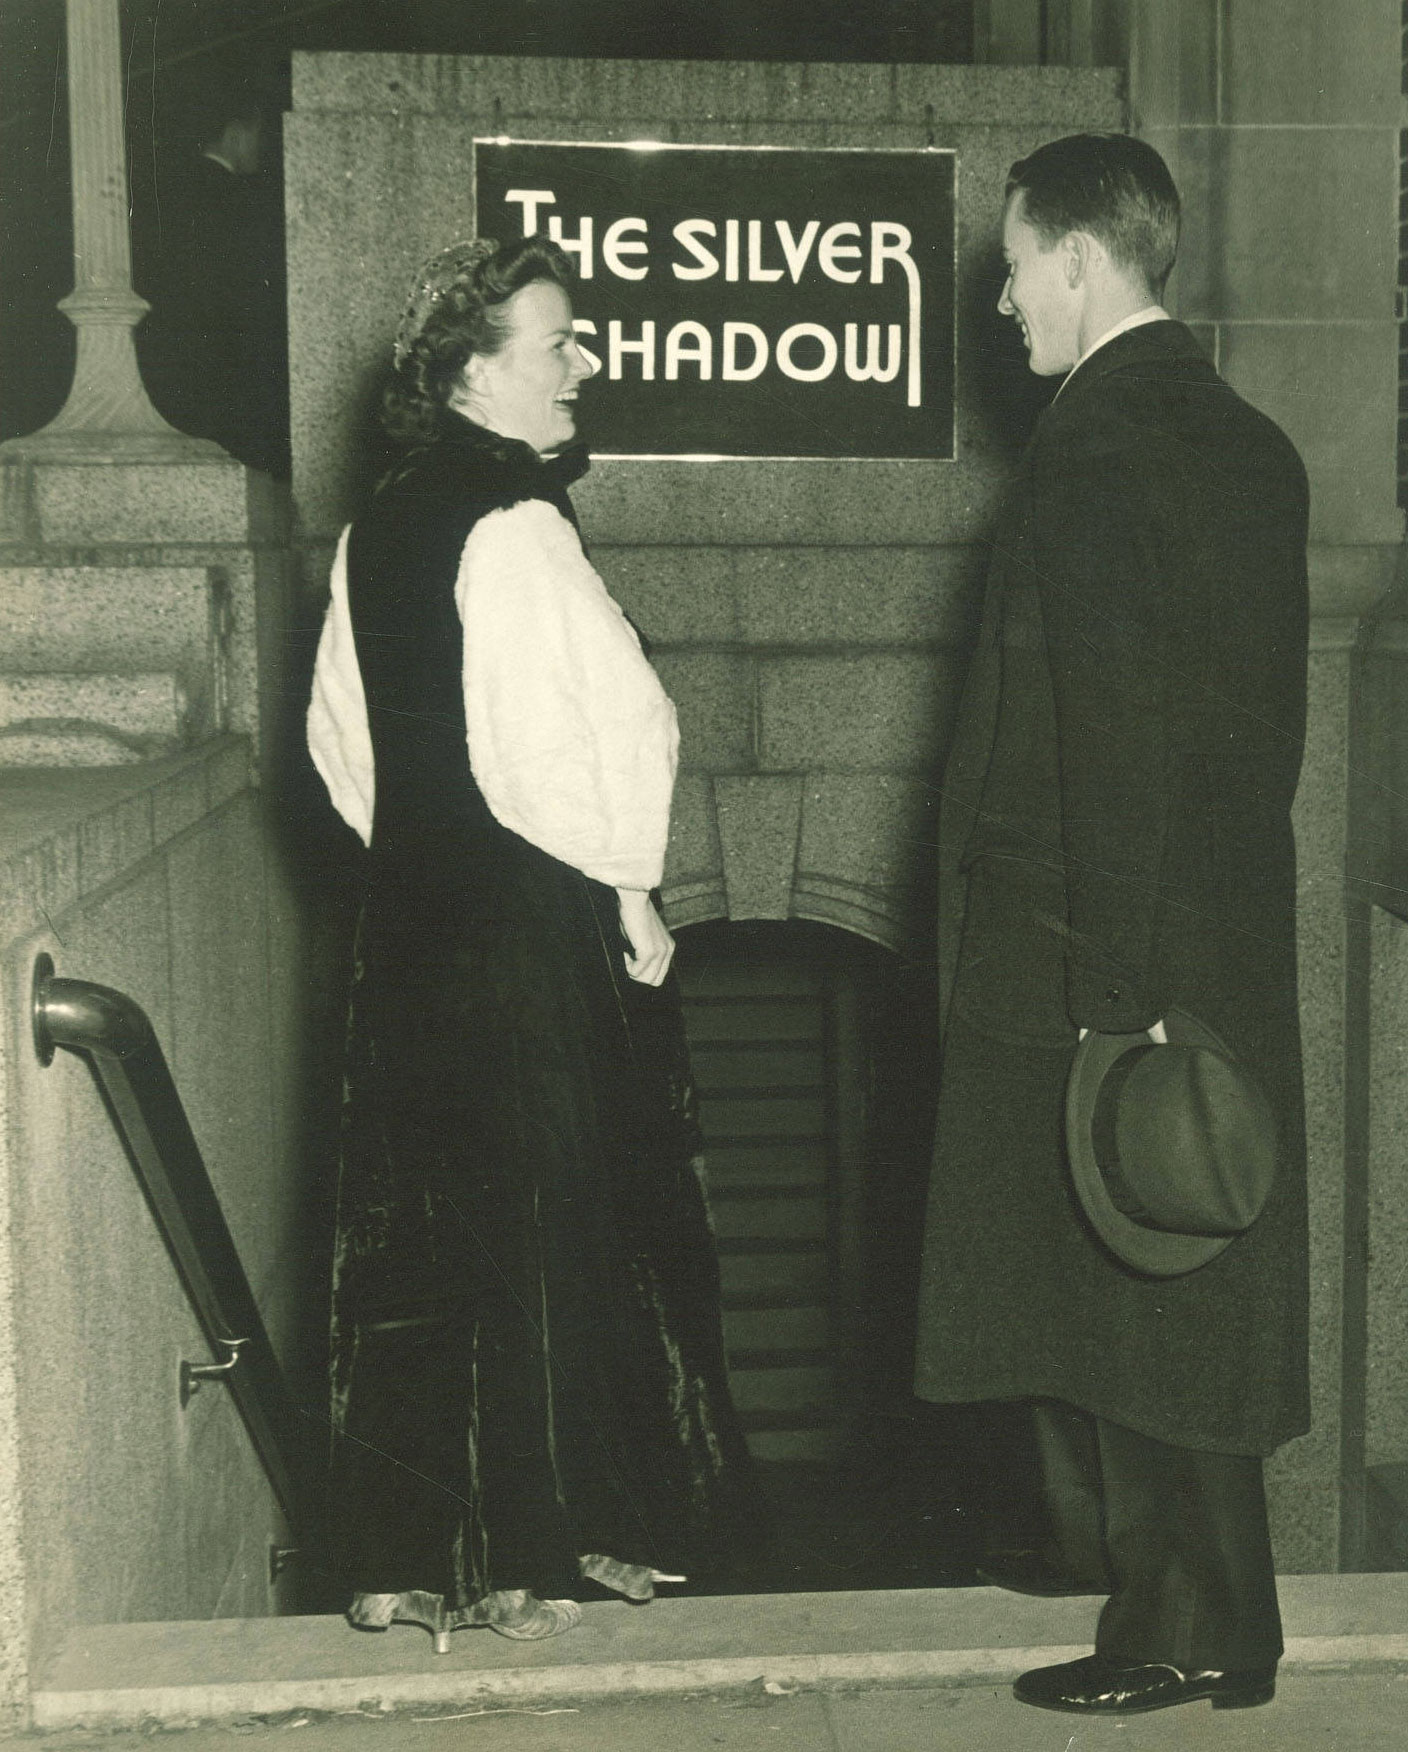 Black-and-white image of Silver Shadow entrance